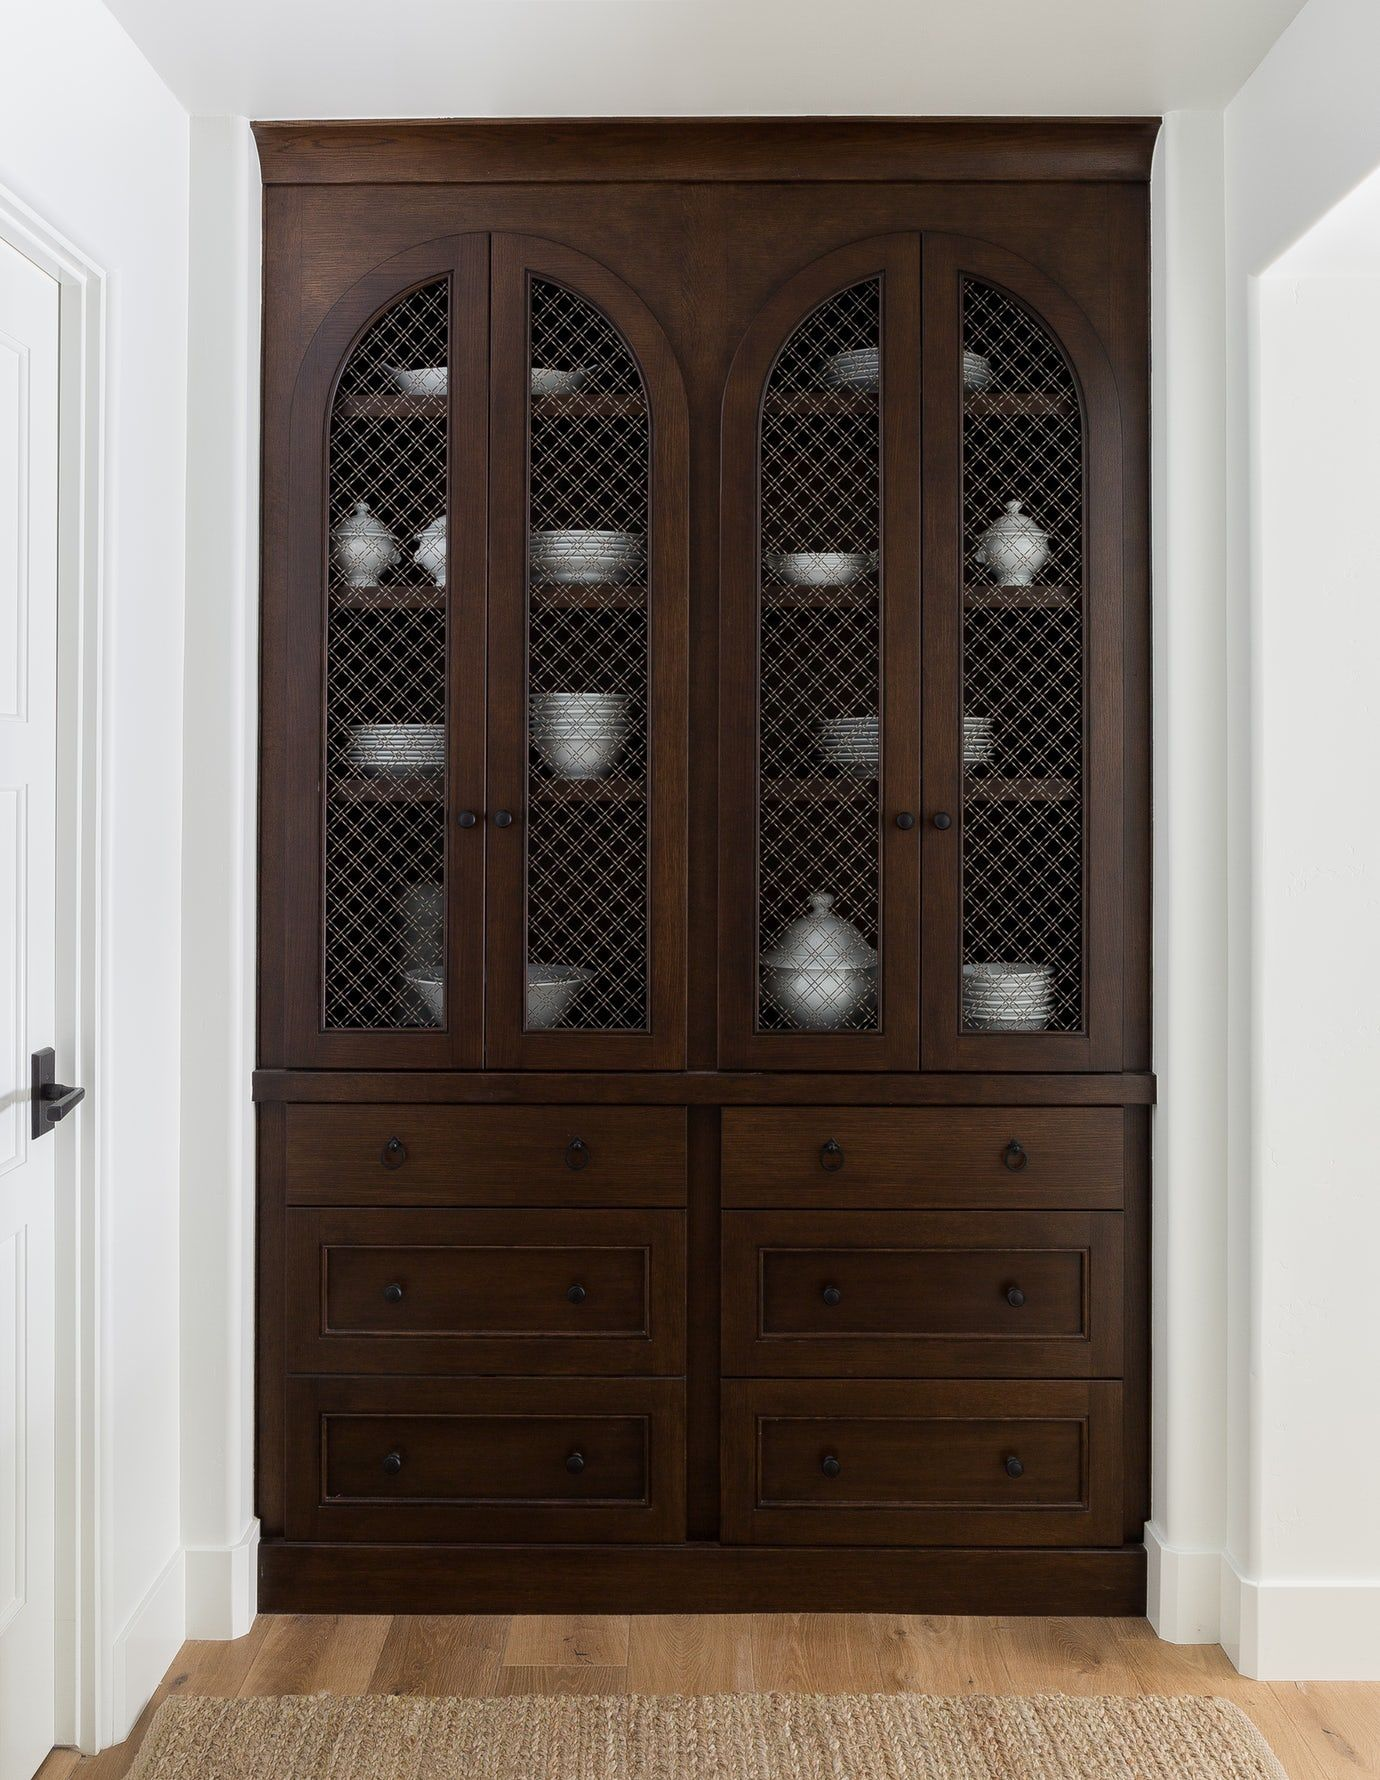 California, Custom Cabinet Hallway Butlers Pantry Closet Traditionalneoclassical Mediterranean Transitional